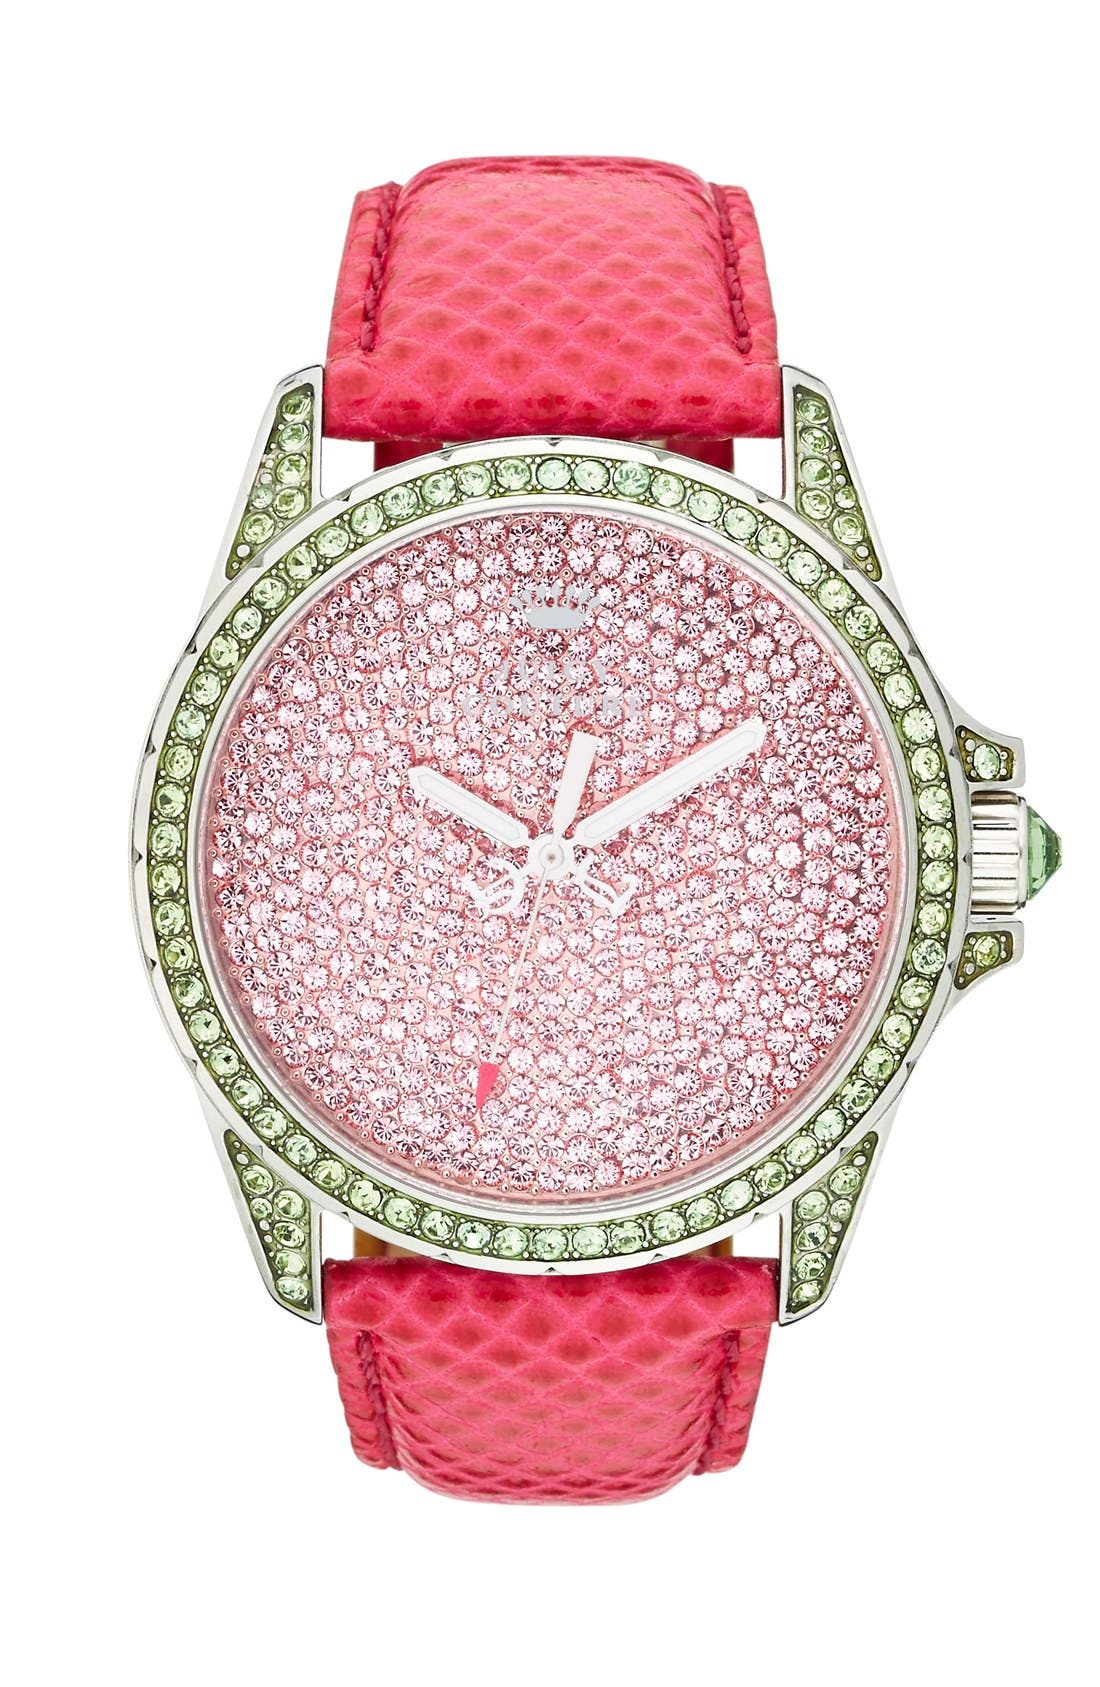 Main Image - Juicy Couture 'Stella' Pavé Crystal Leather Strap Watch, 40mm